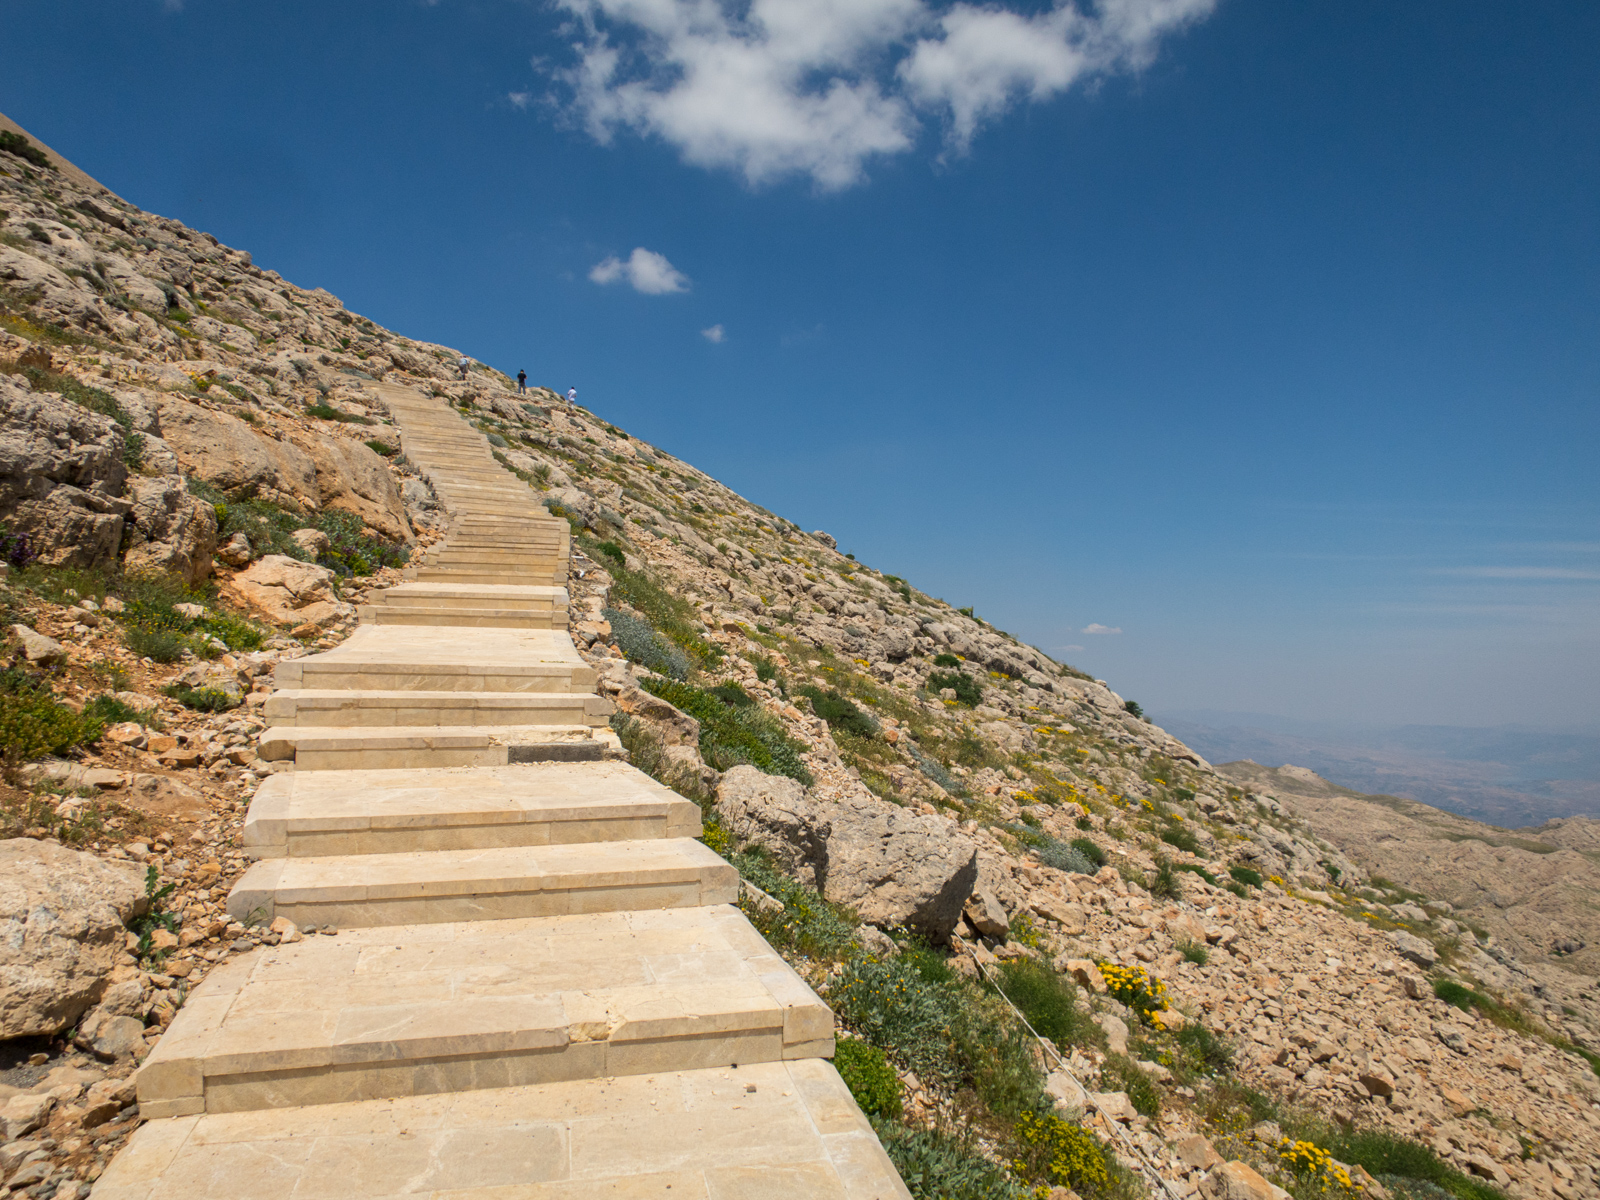 Stairs leading up Mount Nemrut